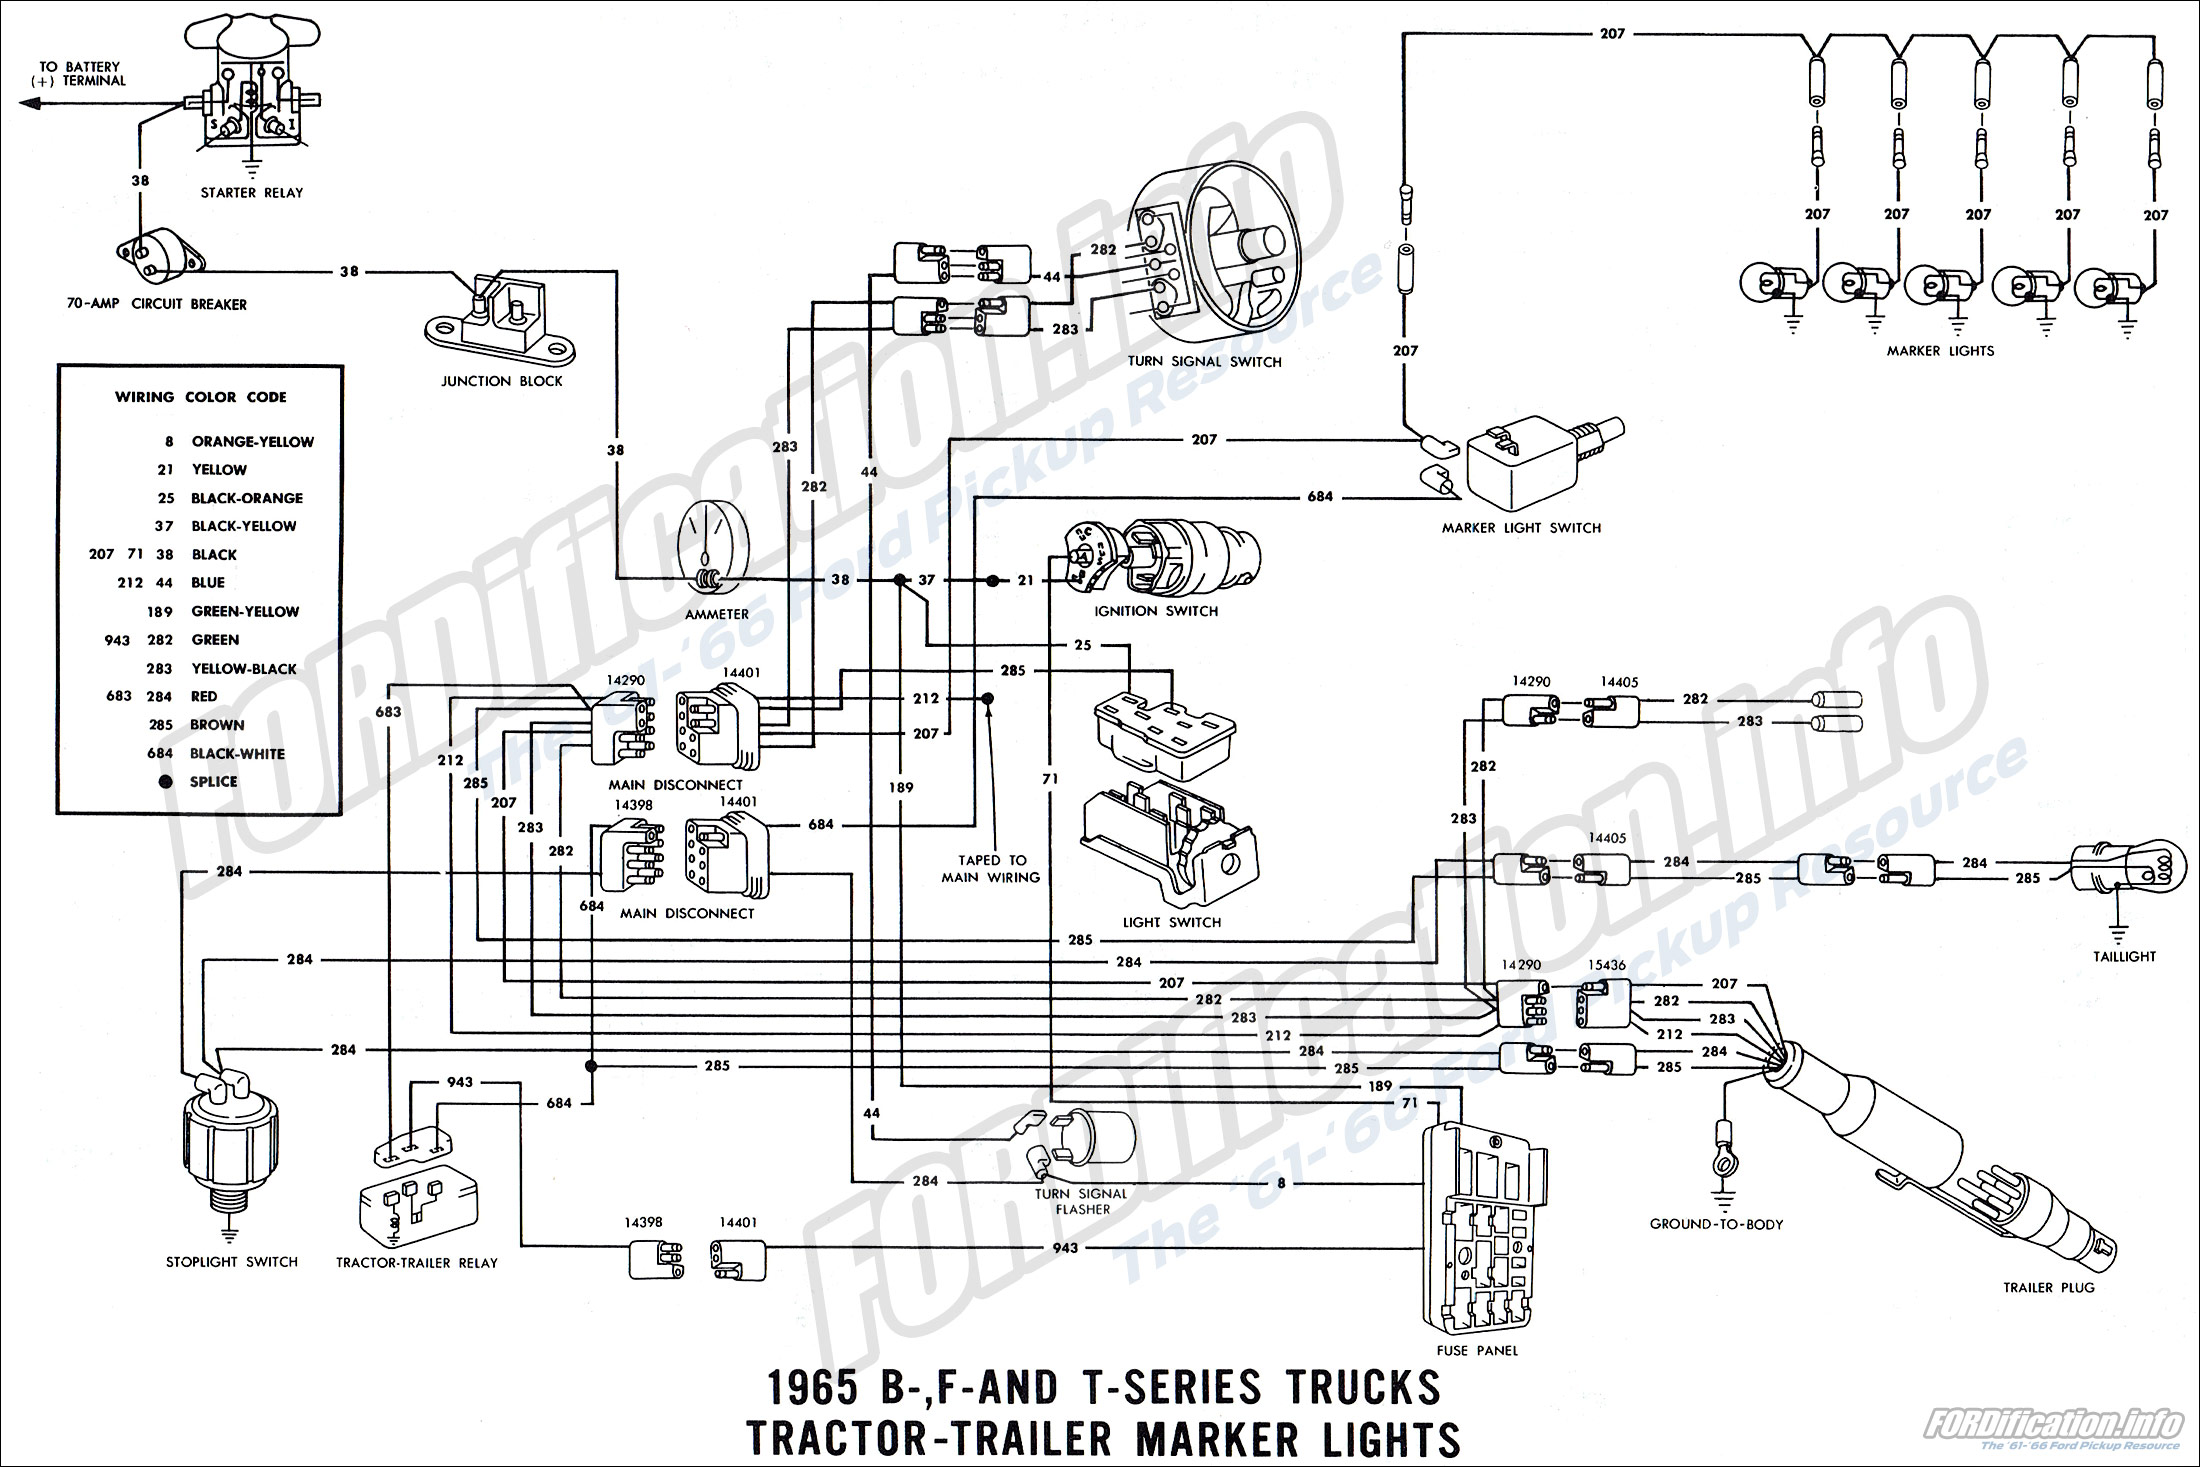 1965 Ford Truck Wiring Diagrams - FORDification.info - The ...